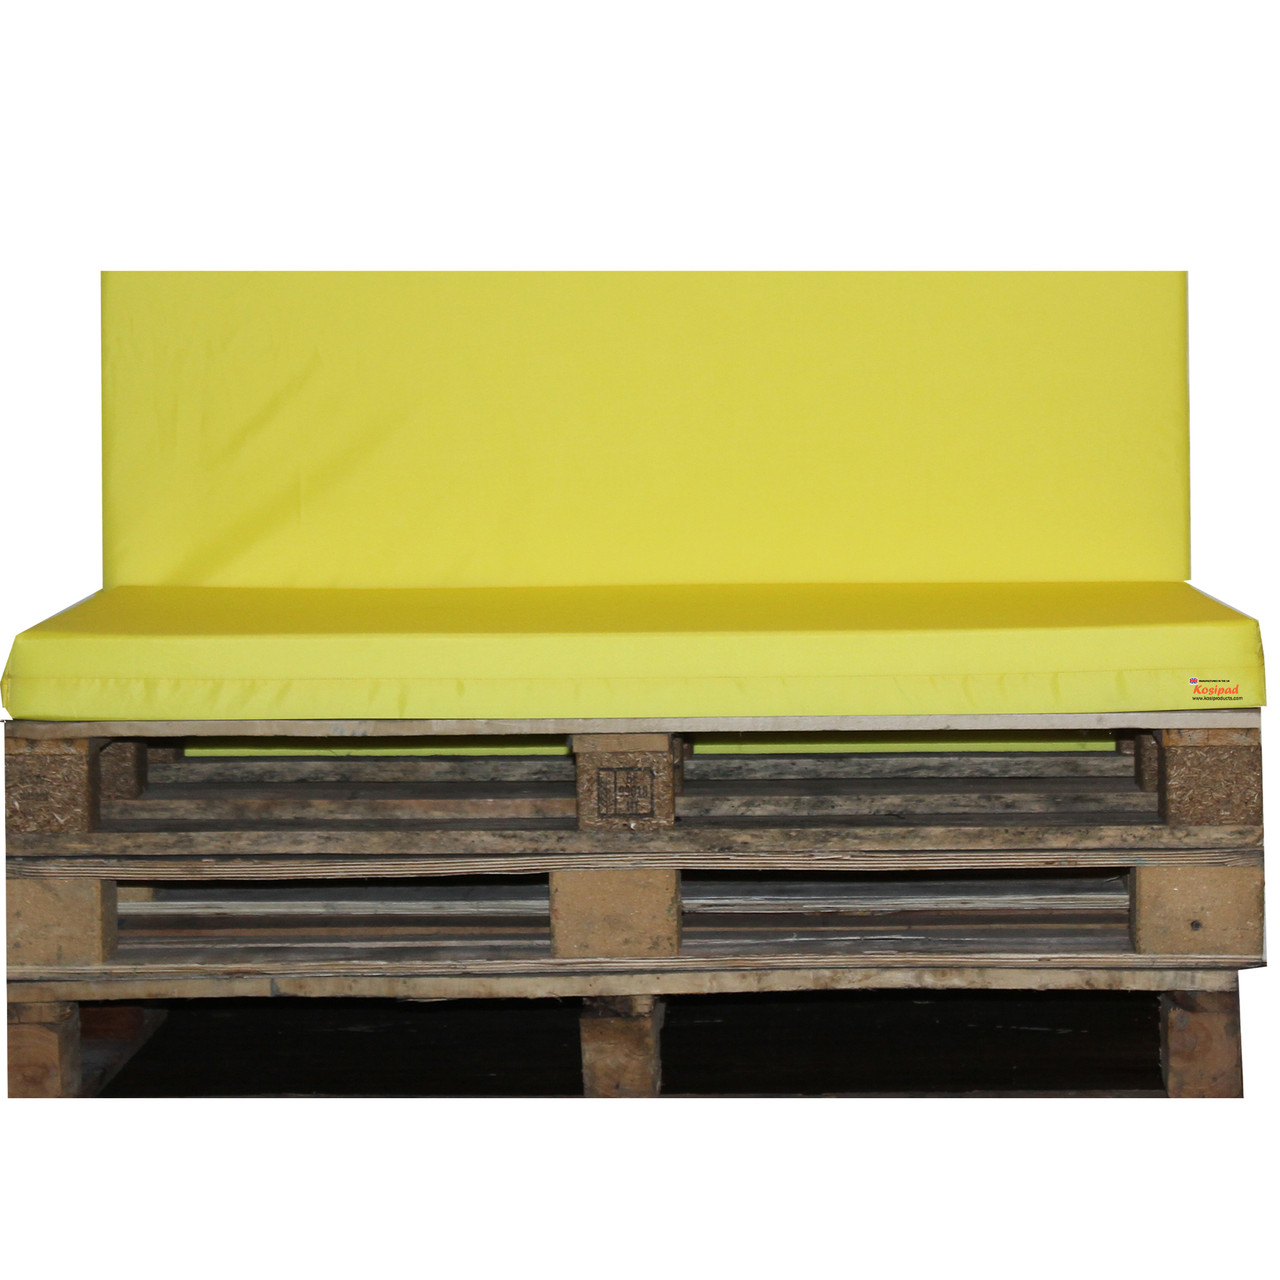 Kosipad Yellow pallet furniture cushions for Euro Pallets